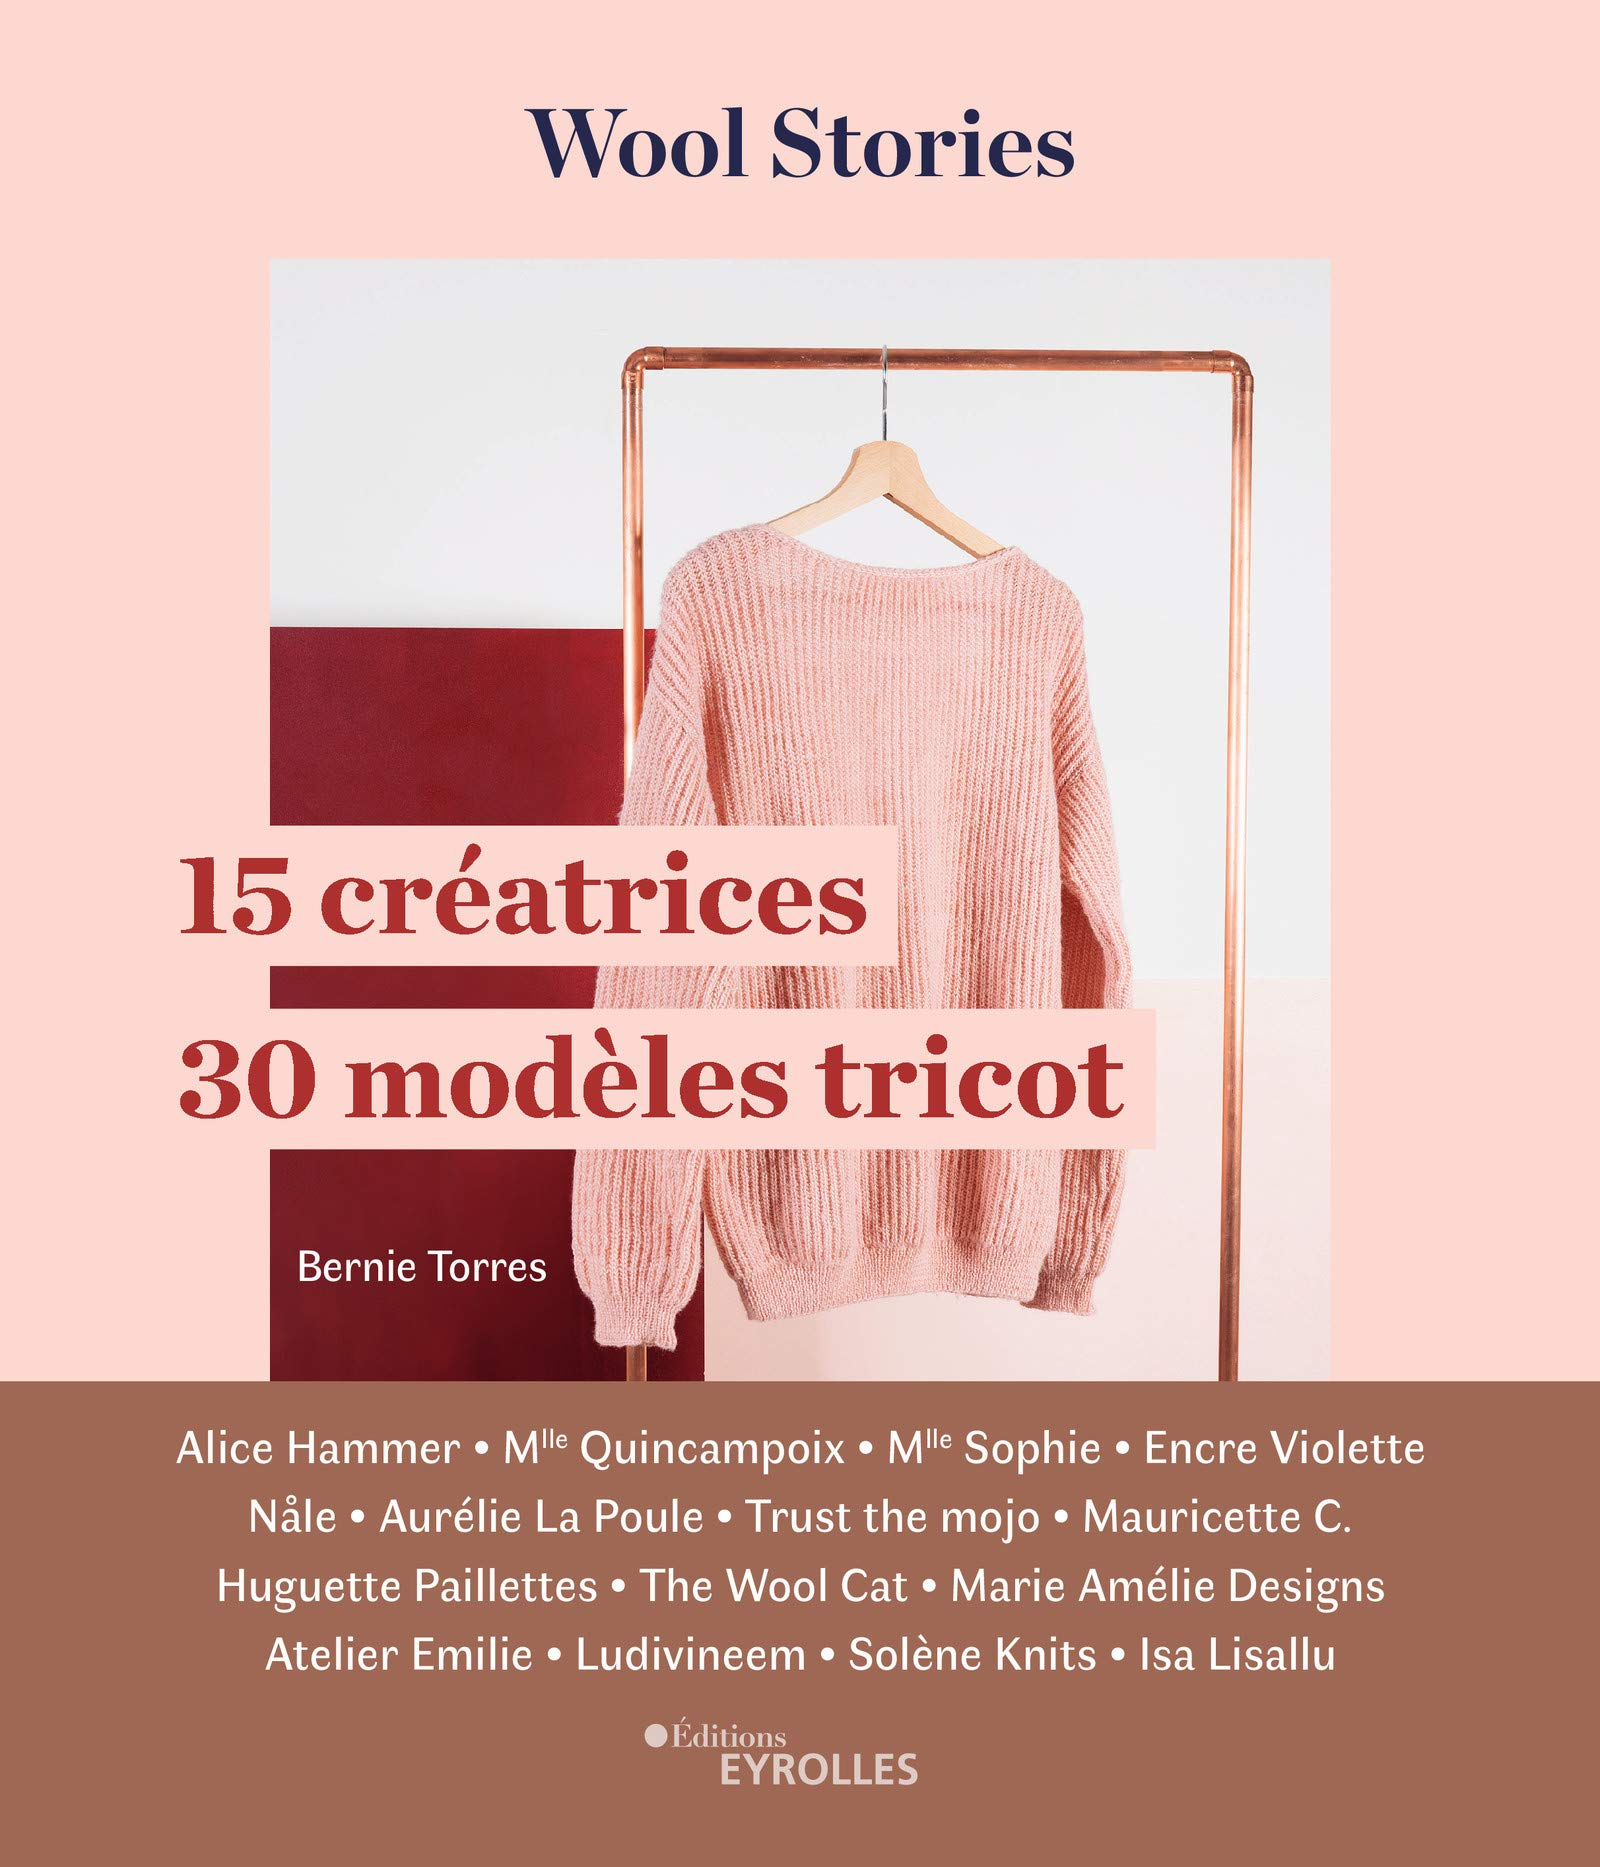 Wool Stories, le livre ~ Photo : Atelier WIld Honey